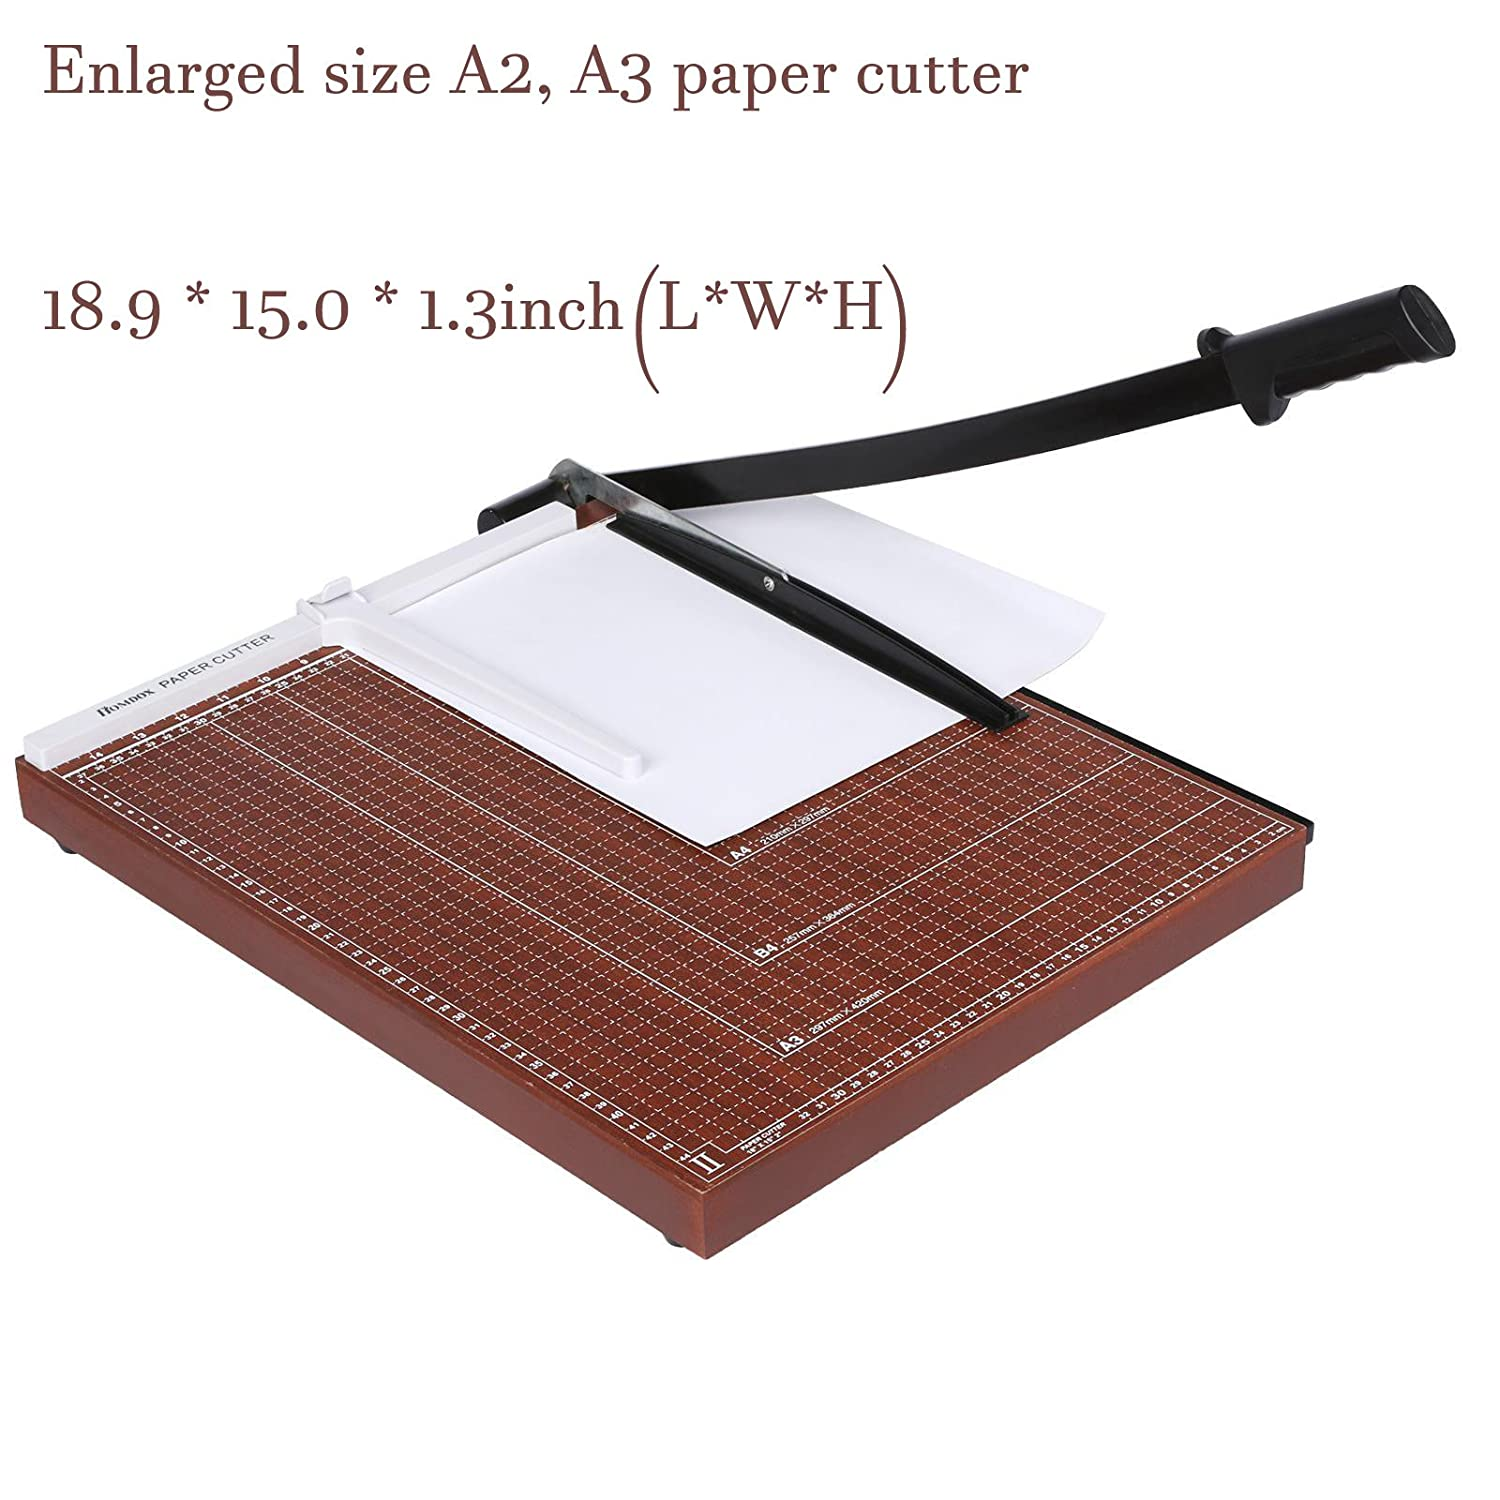 Professional Office Home Guillotine A4 Paper Cutter Black Steel Durable Accurate Desk Tops Paper Cutter Trimmer Scrap Machine(White, 12.5 x 9.8 x 1.2inch) 12.5 x 9.8 x 1.2inch) Evokem